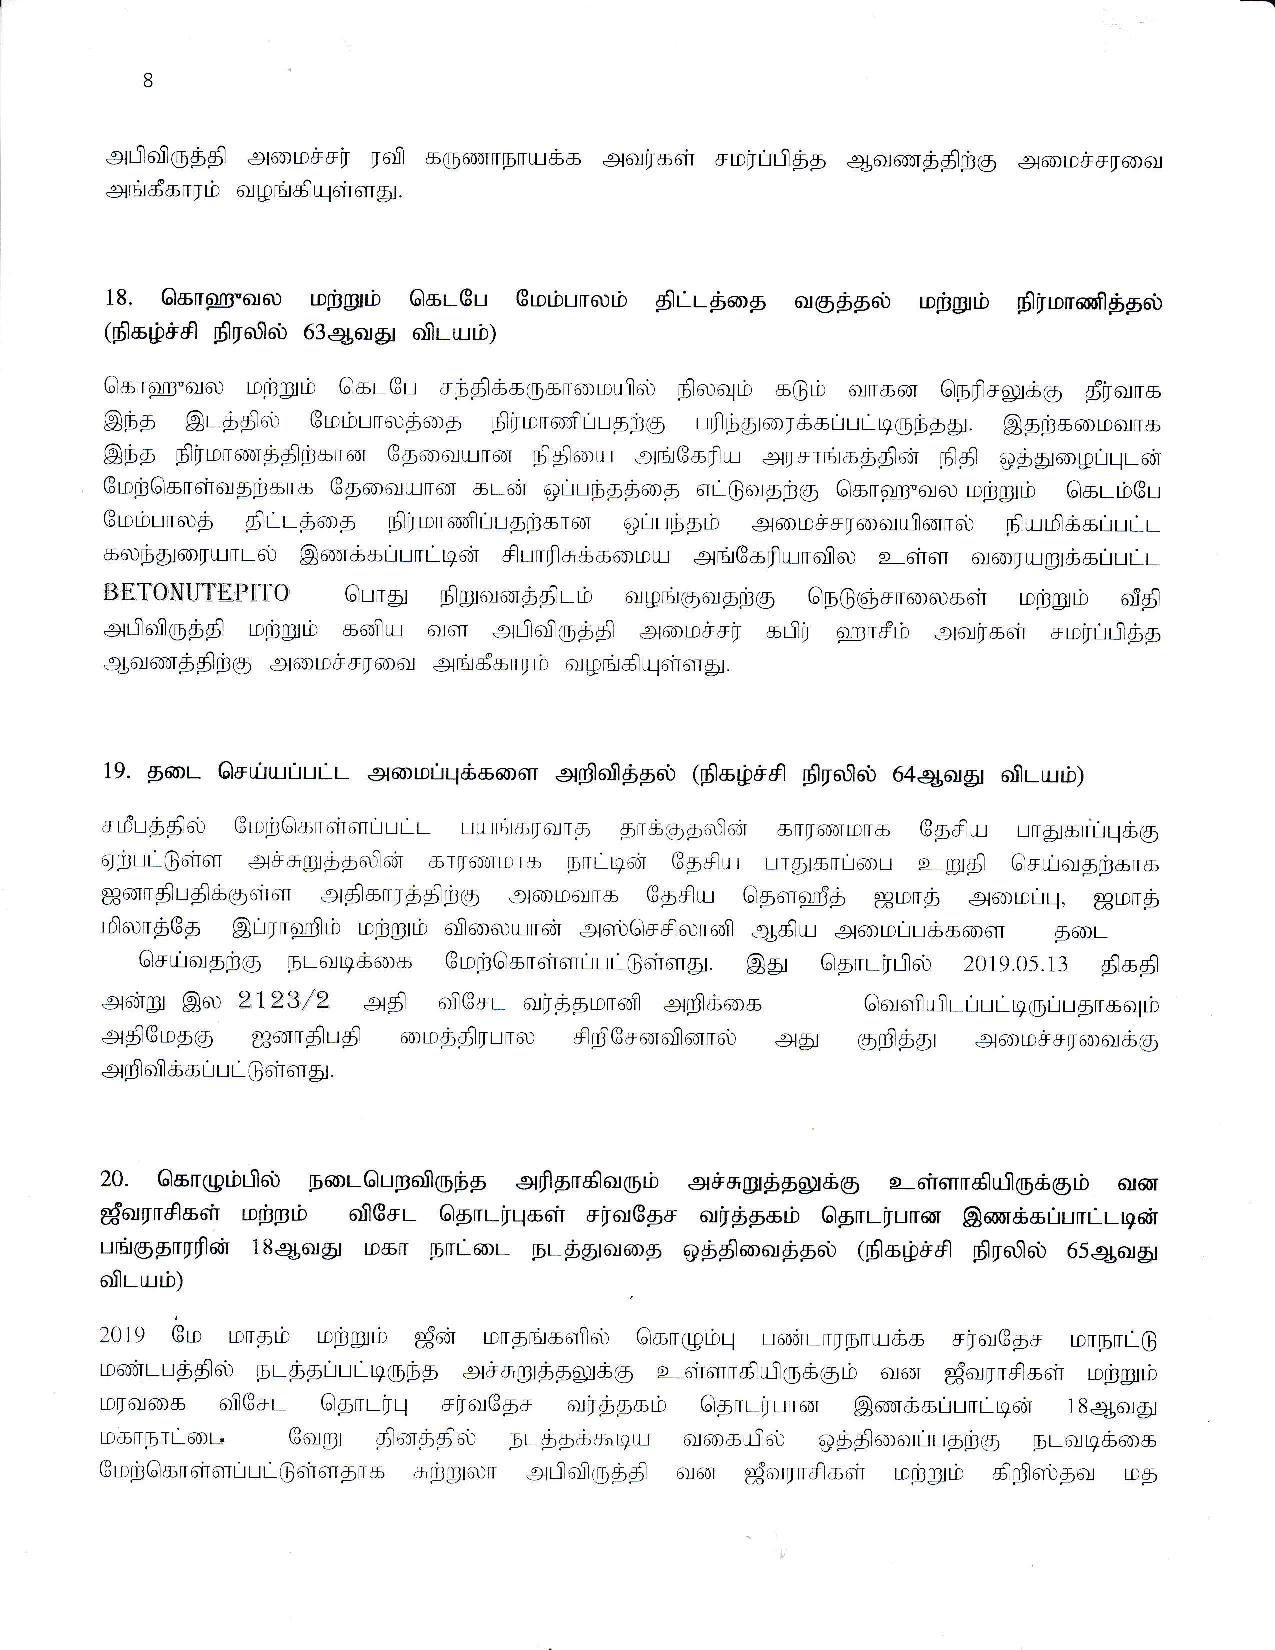 Cabinet Decision on 21.05.2019 Tamil page 009